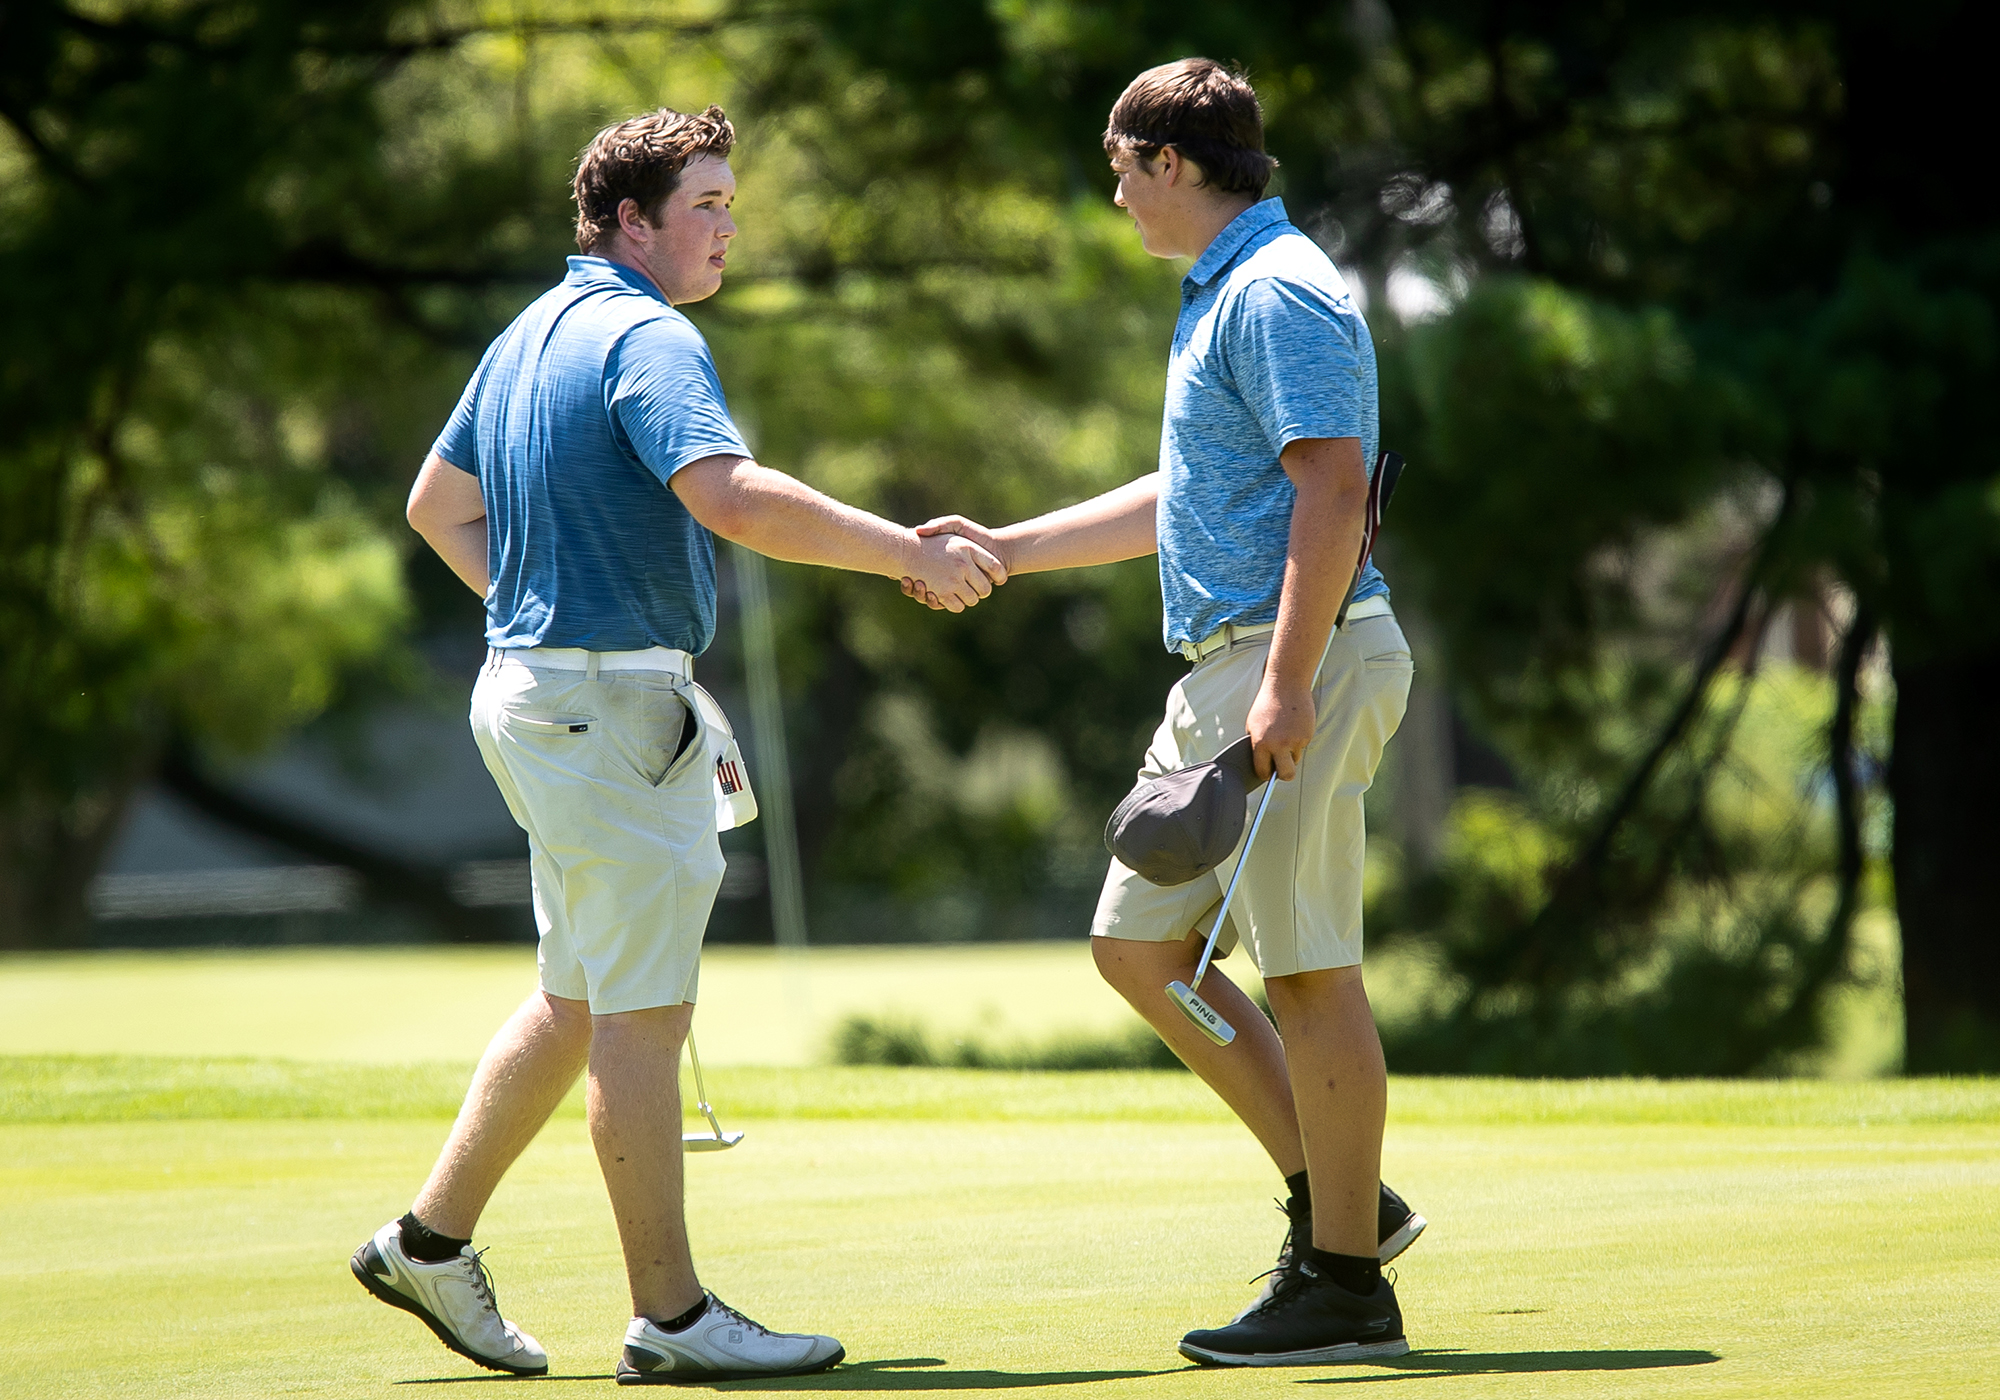 Chase Piehler of Beardstown, left, took a 5-up-4 semifinal decision over JacksonvilleÕs Harrison Chumley in the boys 16-17 championship flight semifinals of the Drysdale Junior Golf Tournament Wednesday, July 11, 2018 at Bunn Golf Course in Springfield, Ill. [Rich Saal/The State Journal-Register]